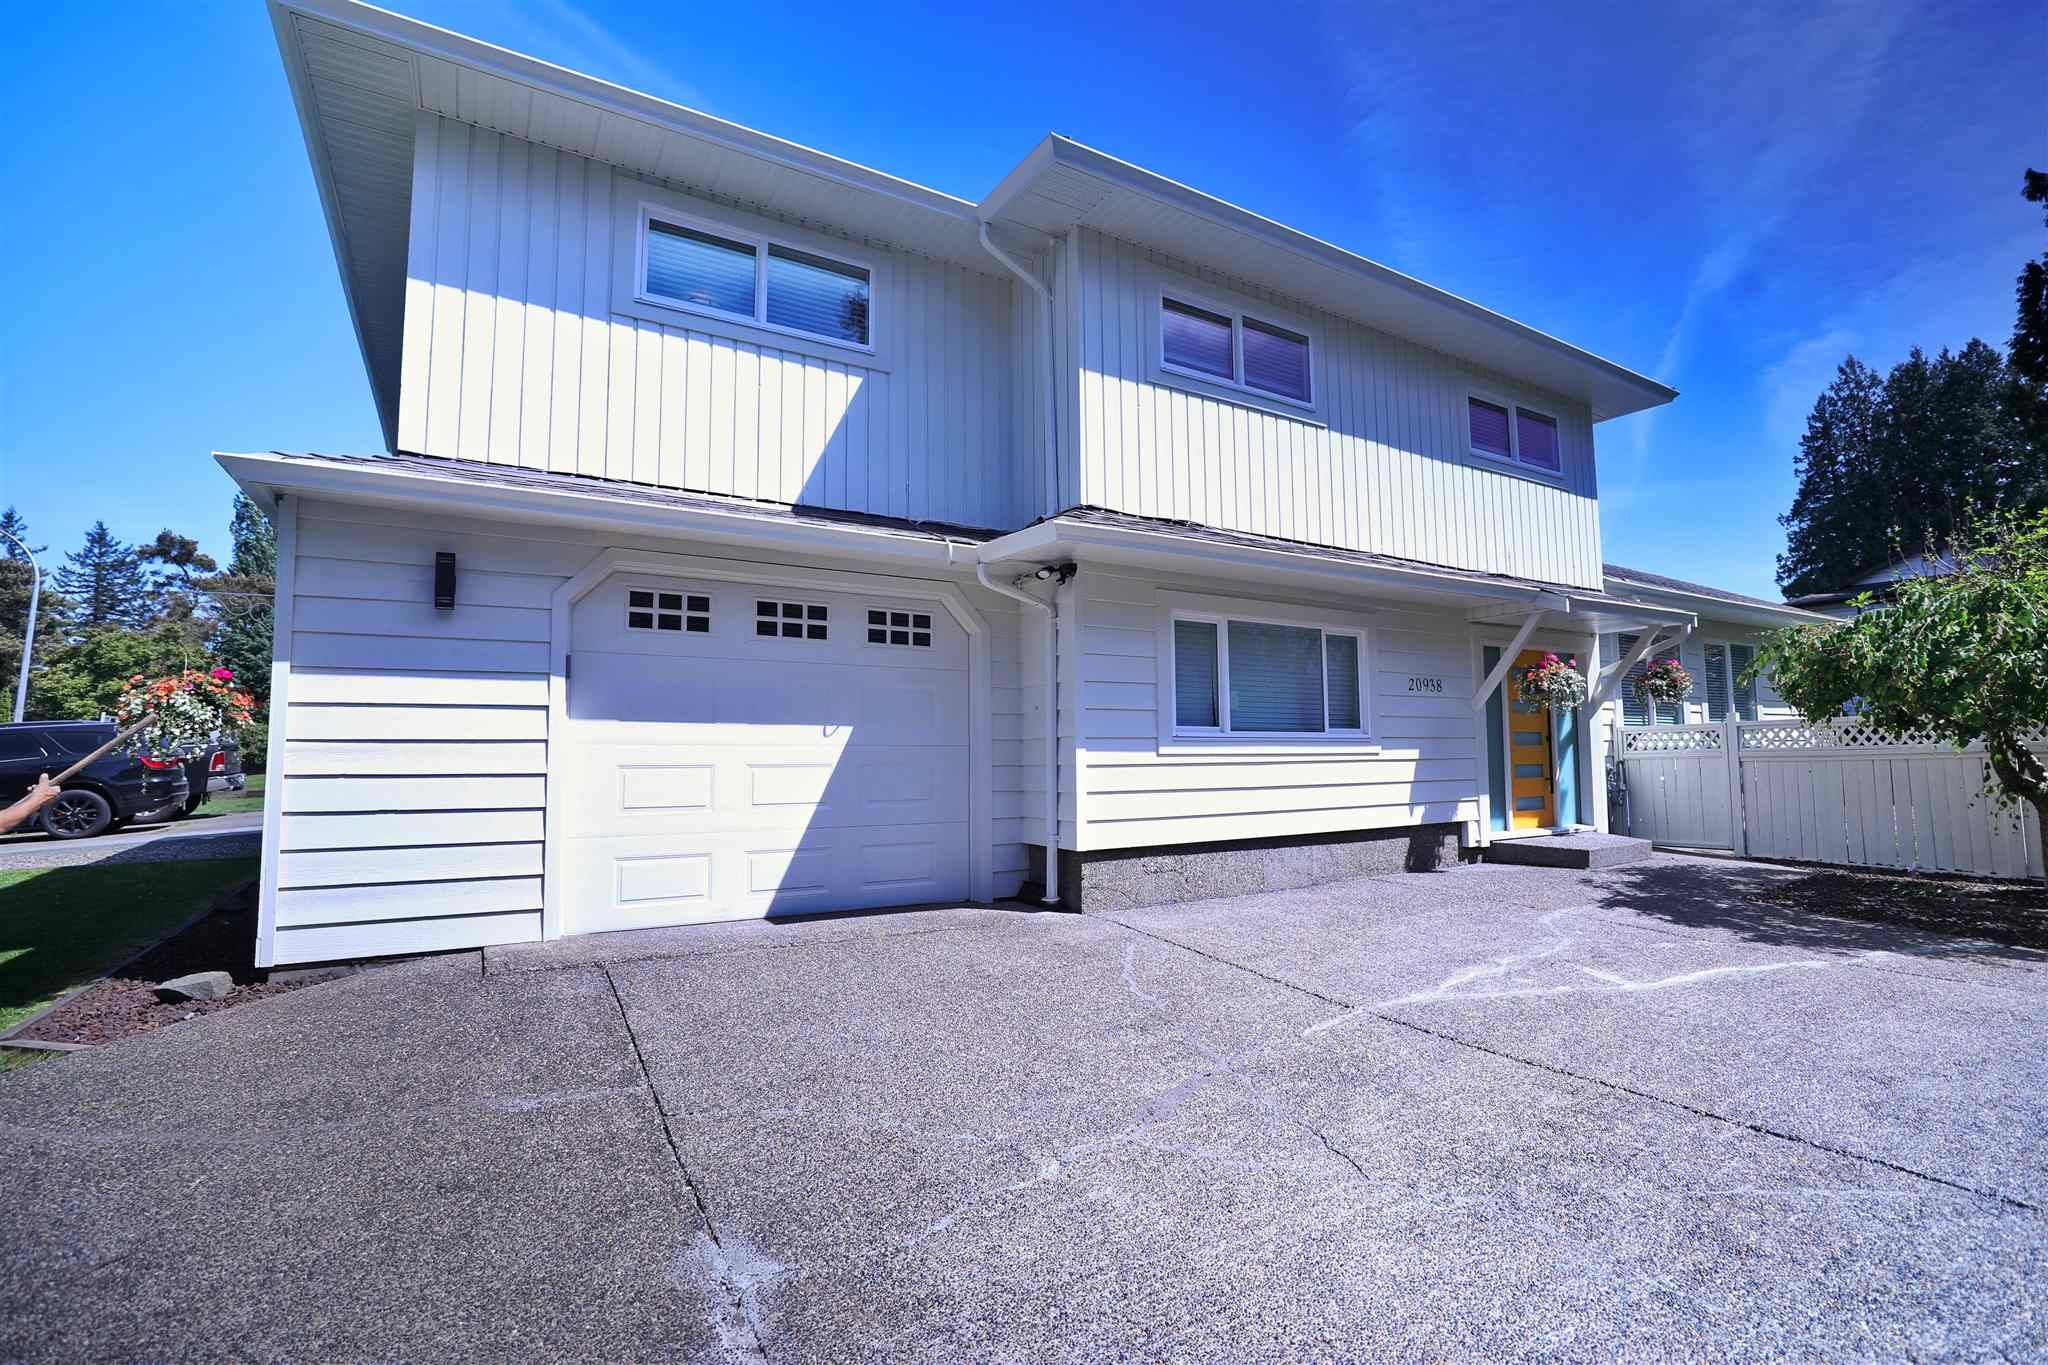 Main Photo: 20938 50 Avenue in Langley: Langley City House for sale : MLS®# R2594755